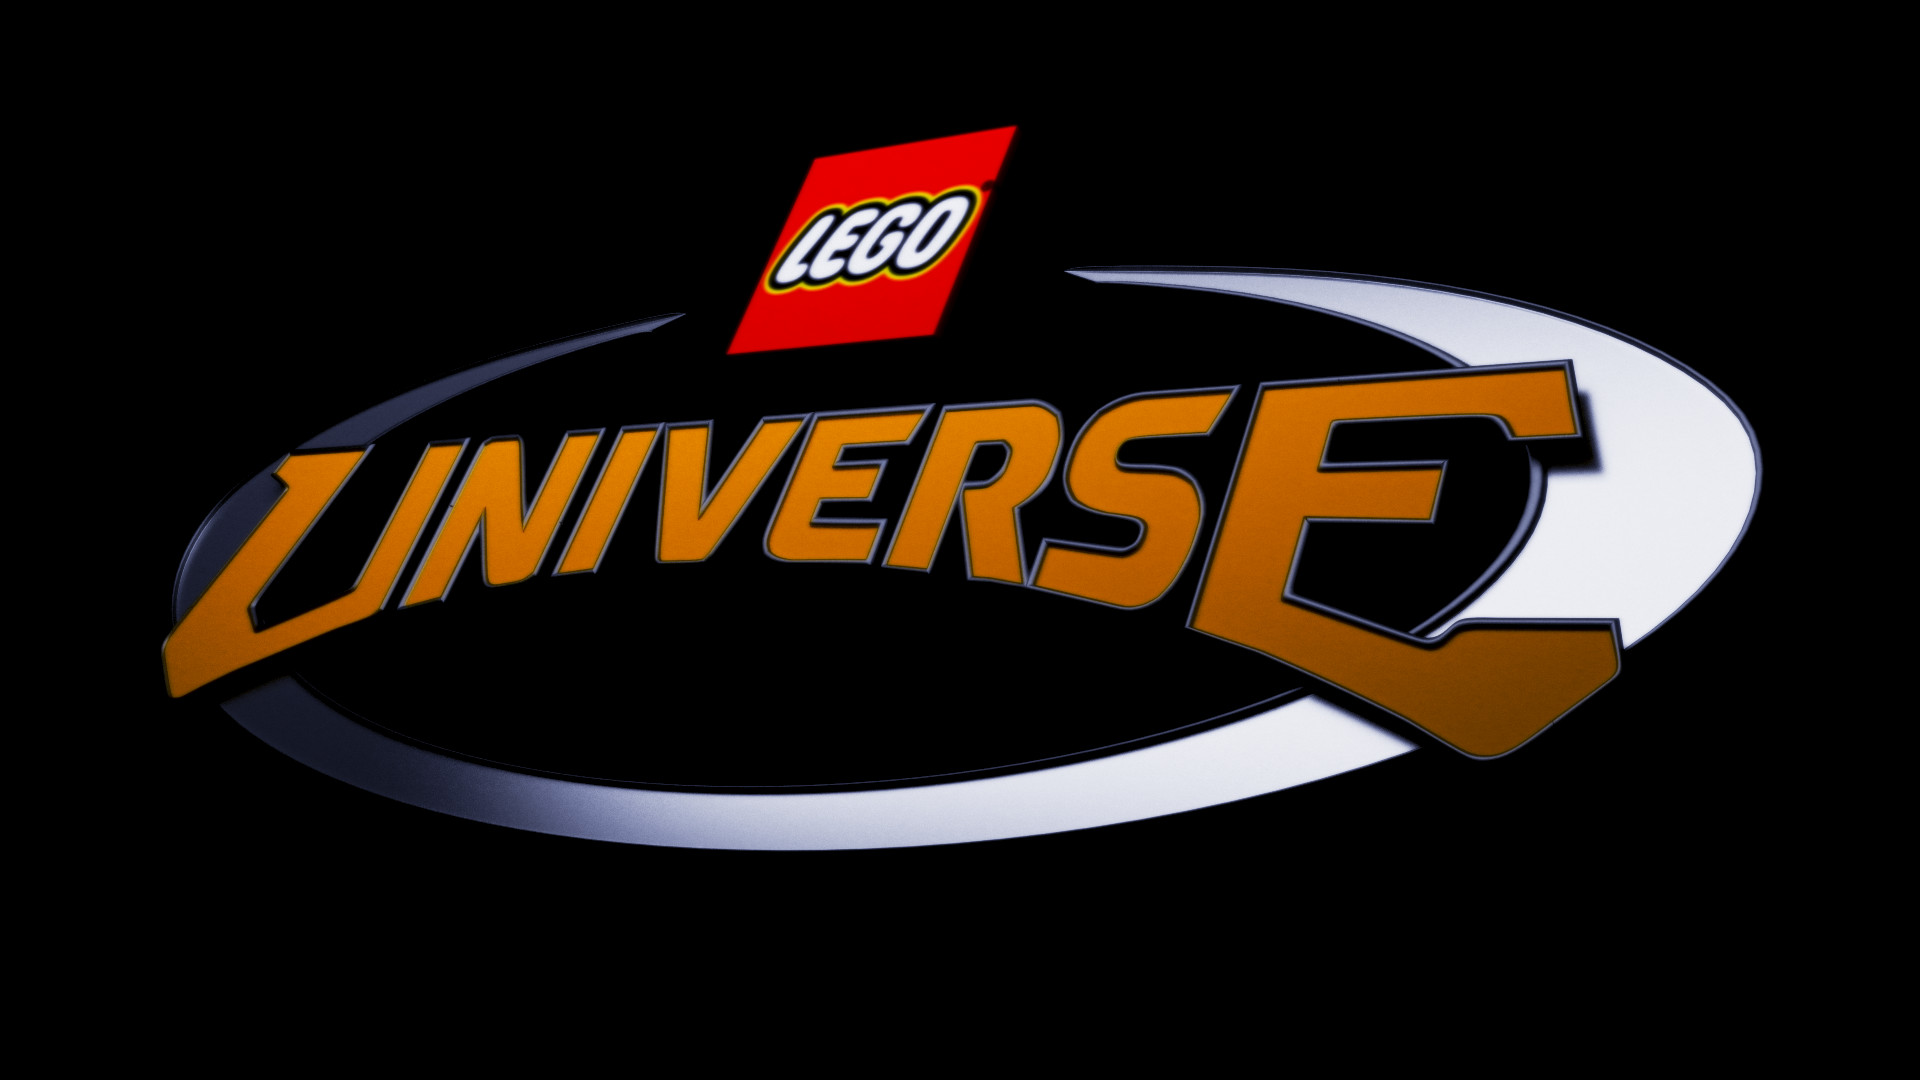 Lego-Universe-Preview.png